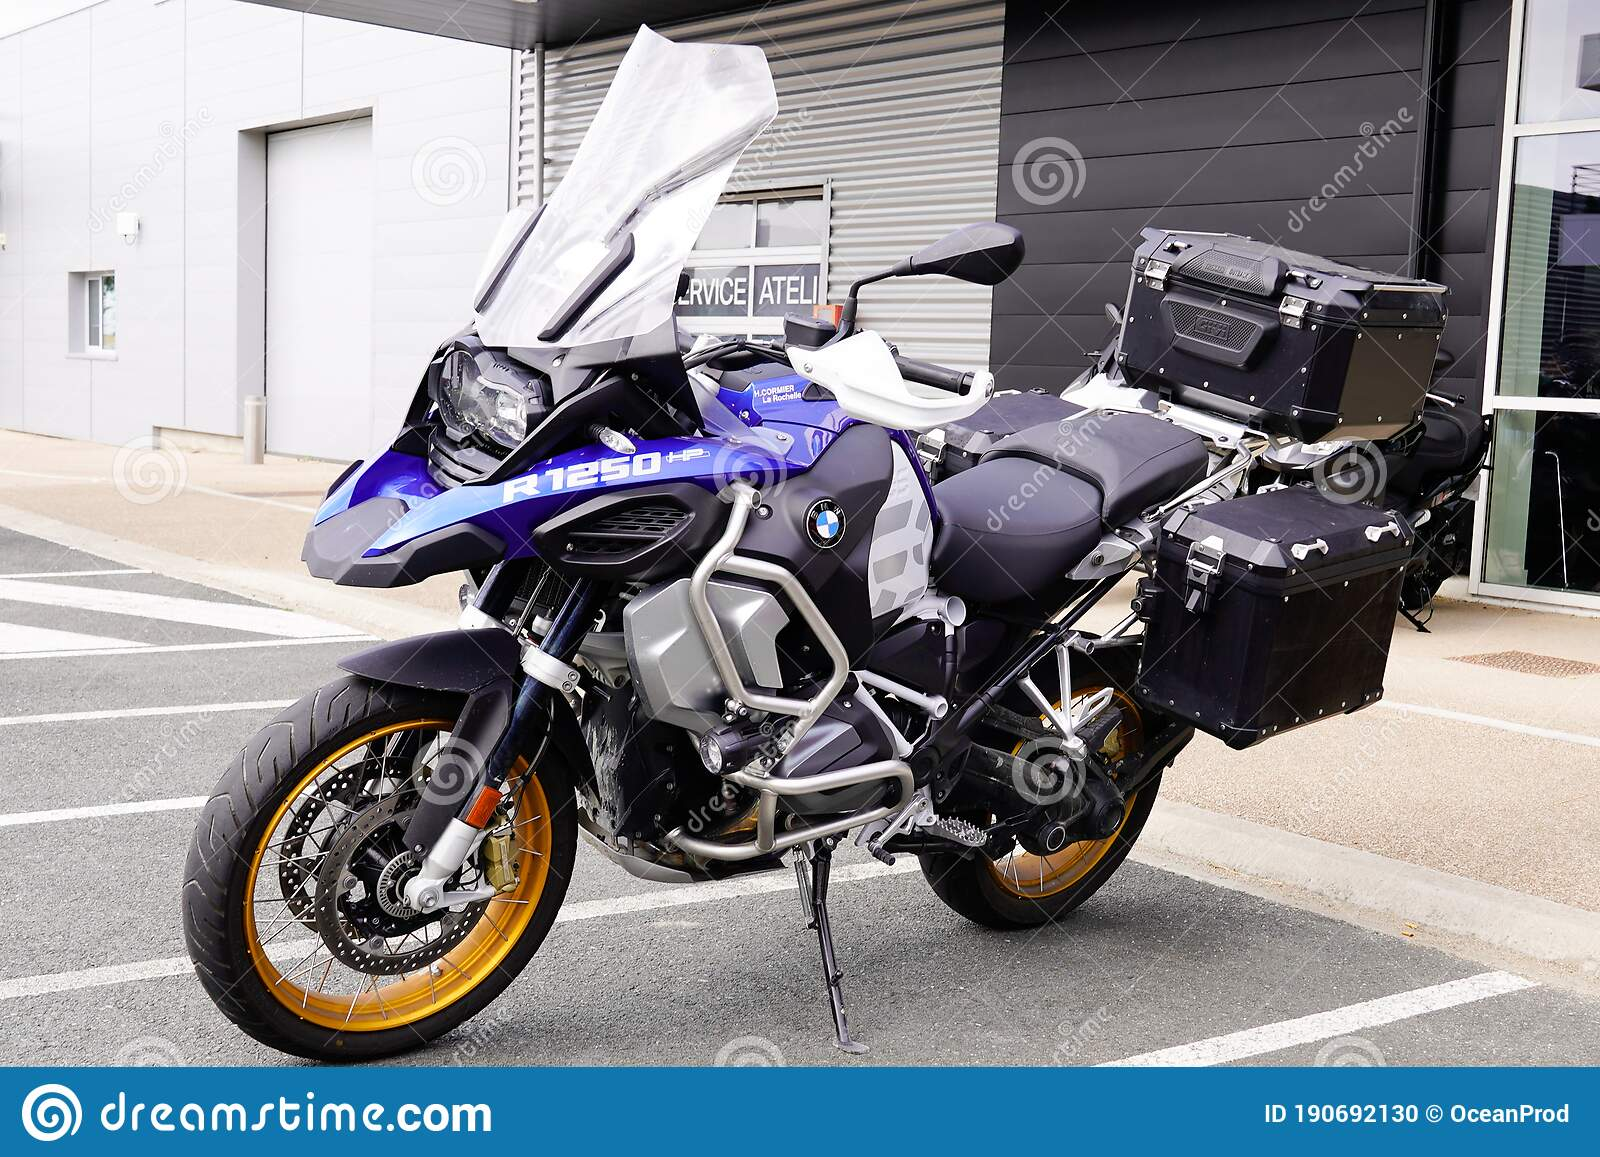 2 034 Bmw Bike Photos Free Royalty Free Stock Photos From Dreamstime